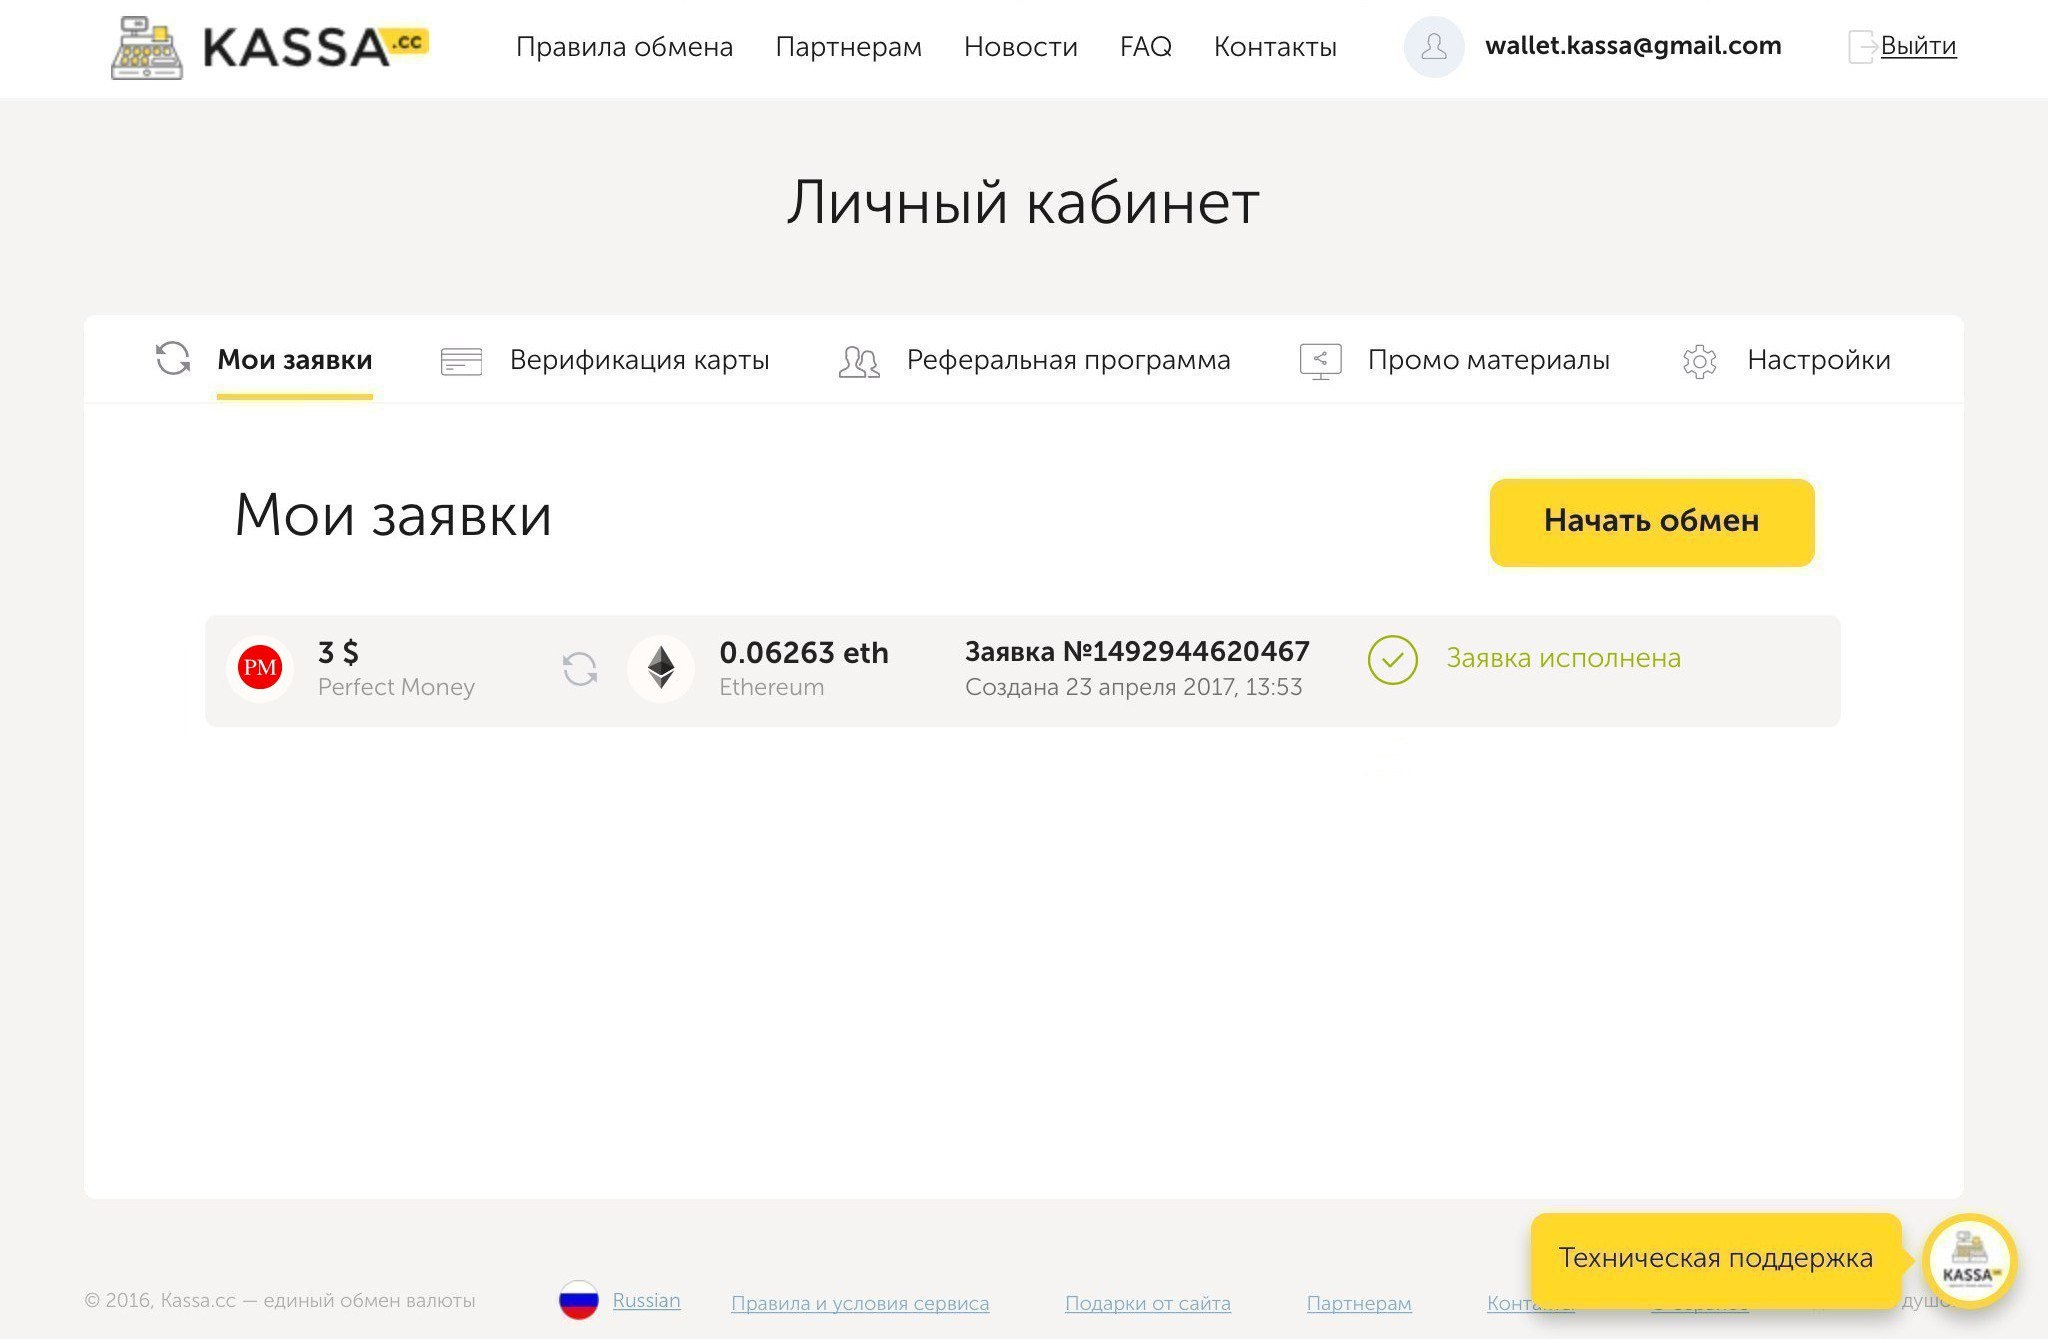 Kassa.cc is a single currency exchange. Exchange Perfect Money USD for Ethereum